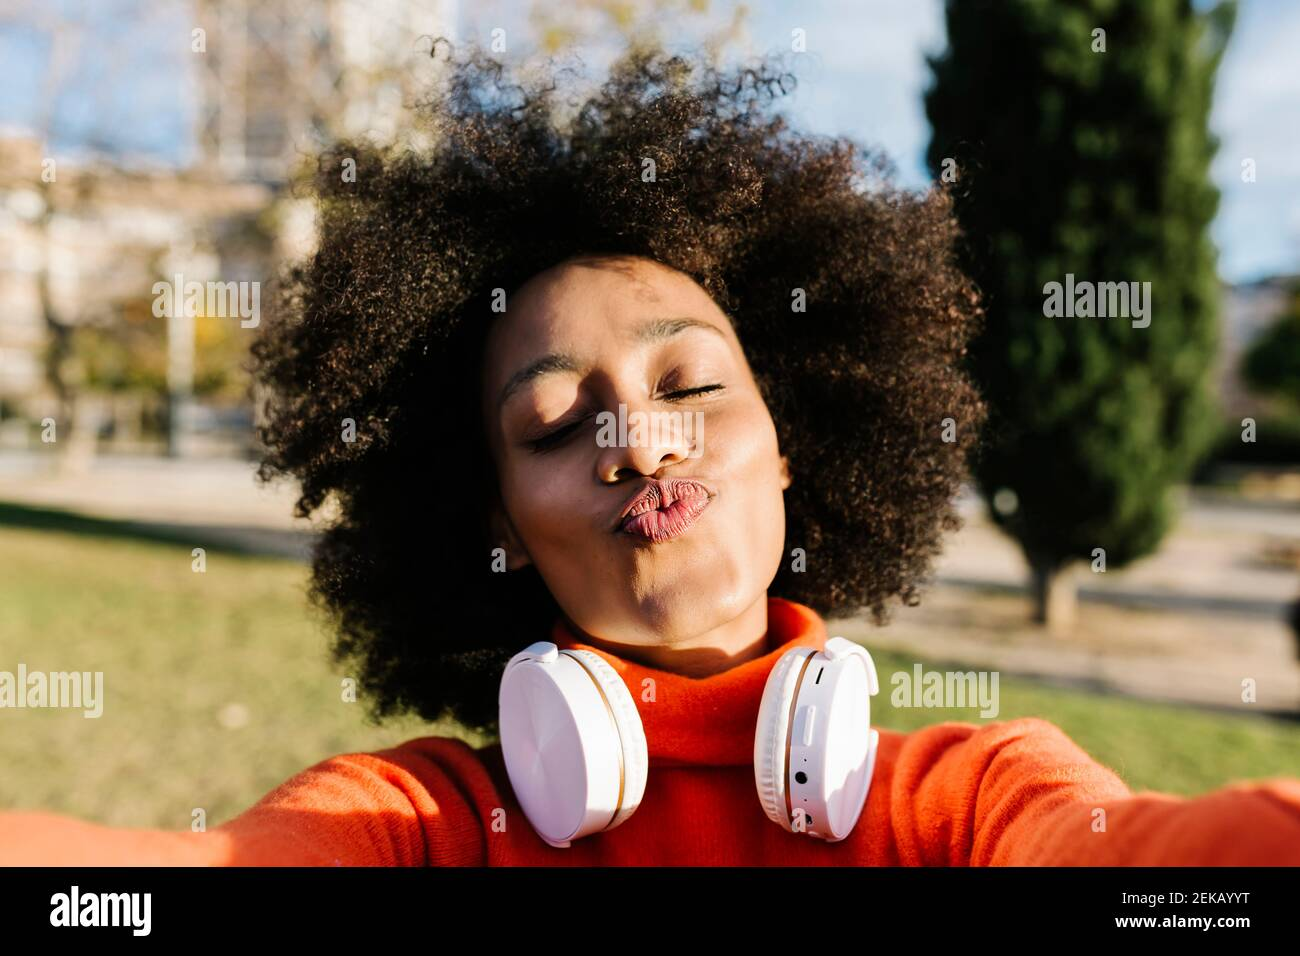 Young woman with eyes closed puckering while taking selfie at park Stock Photo